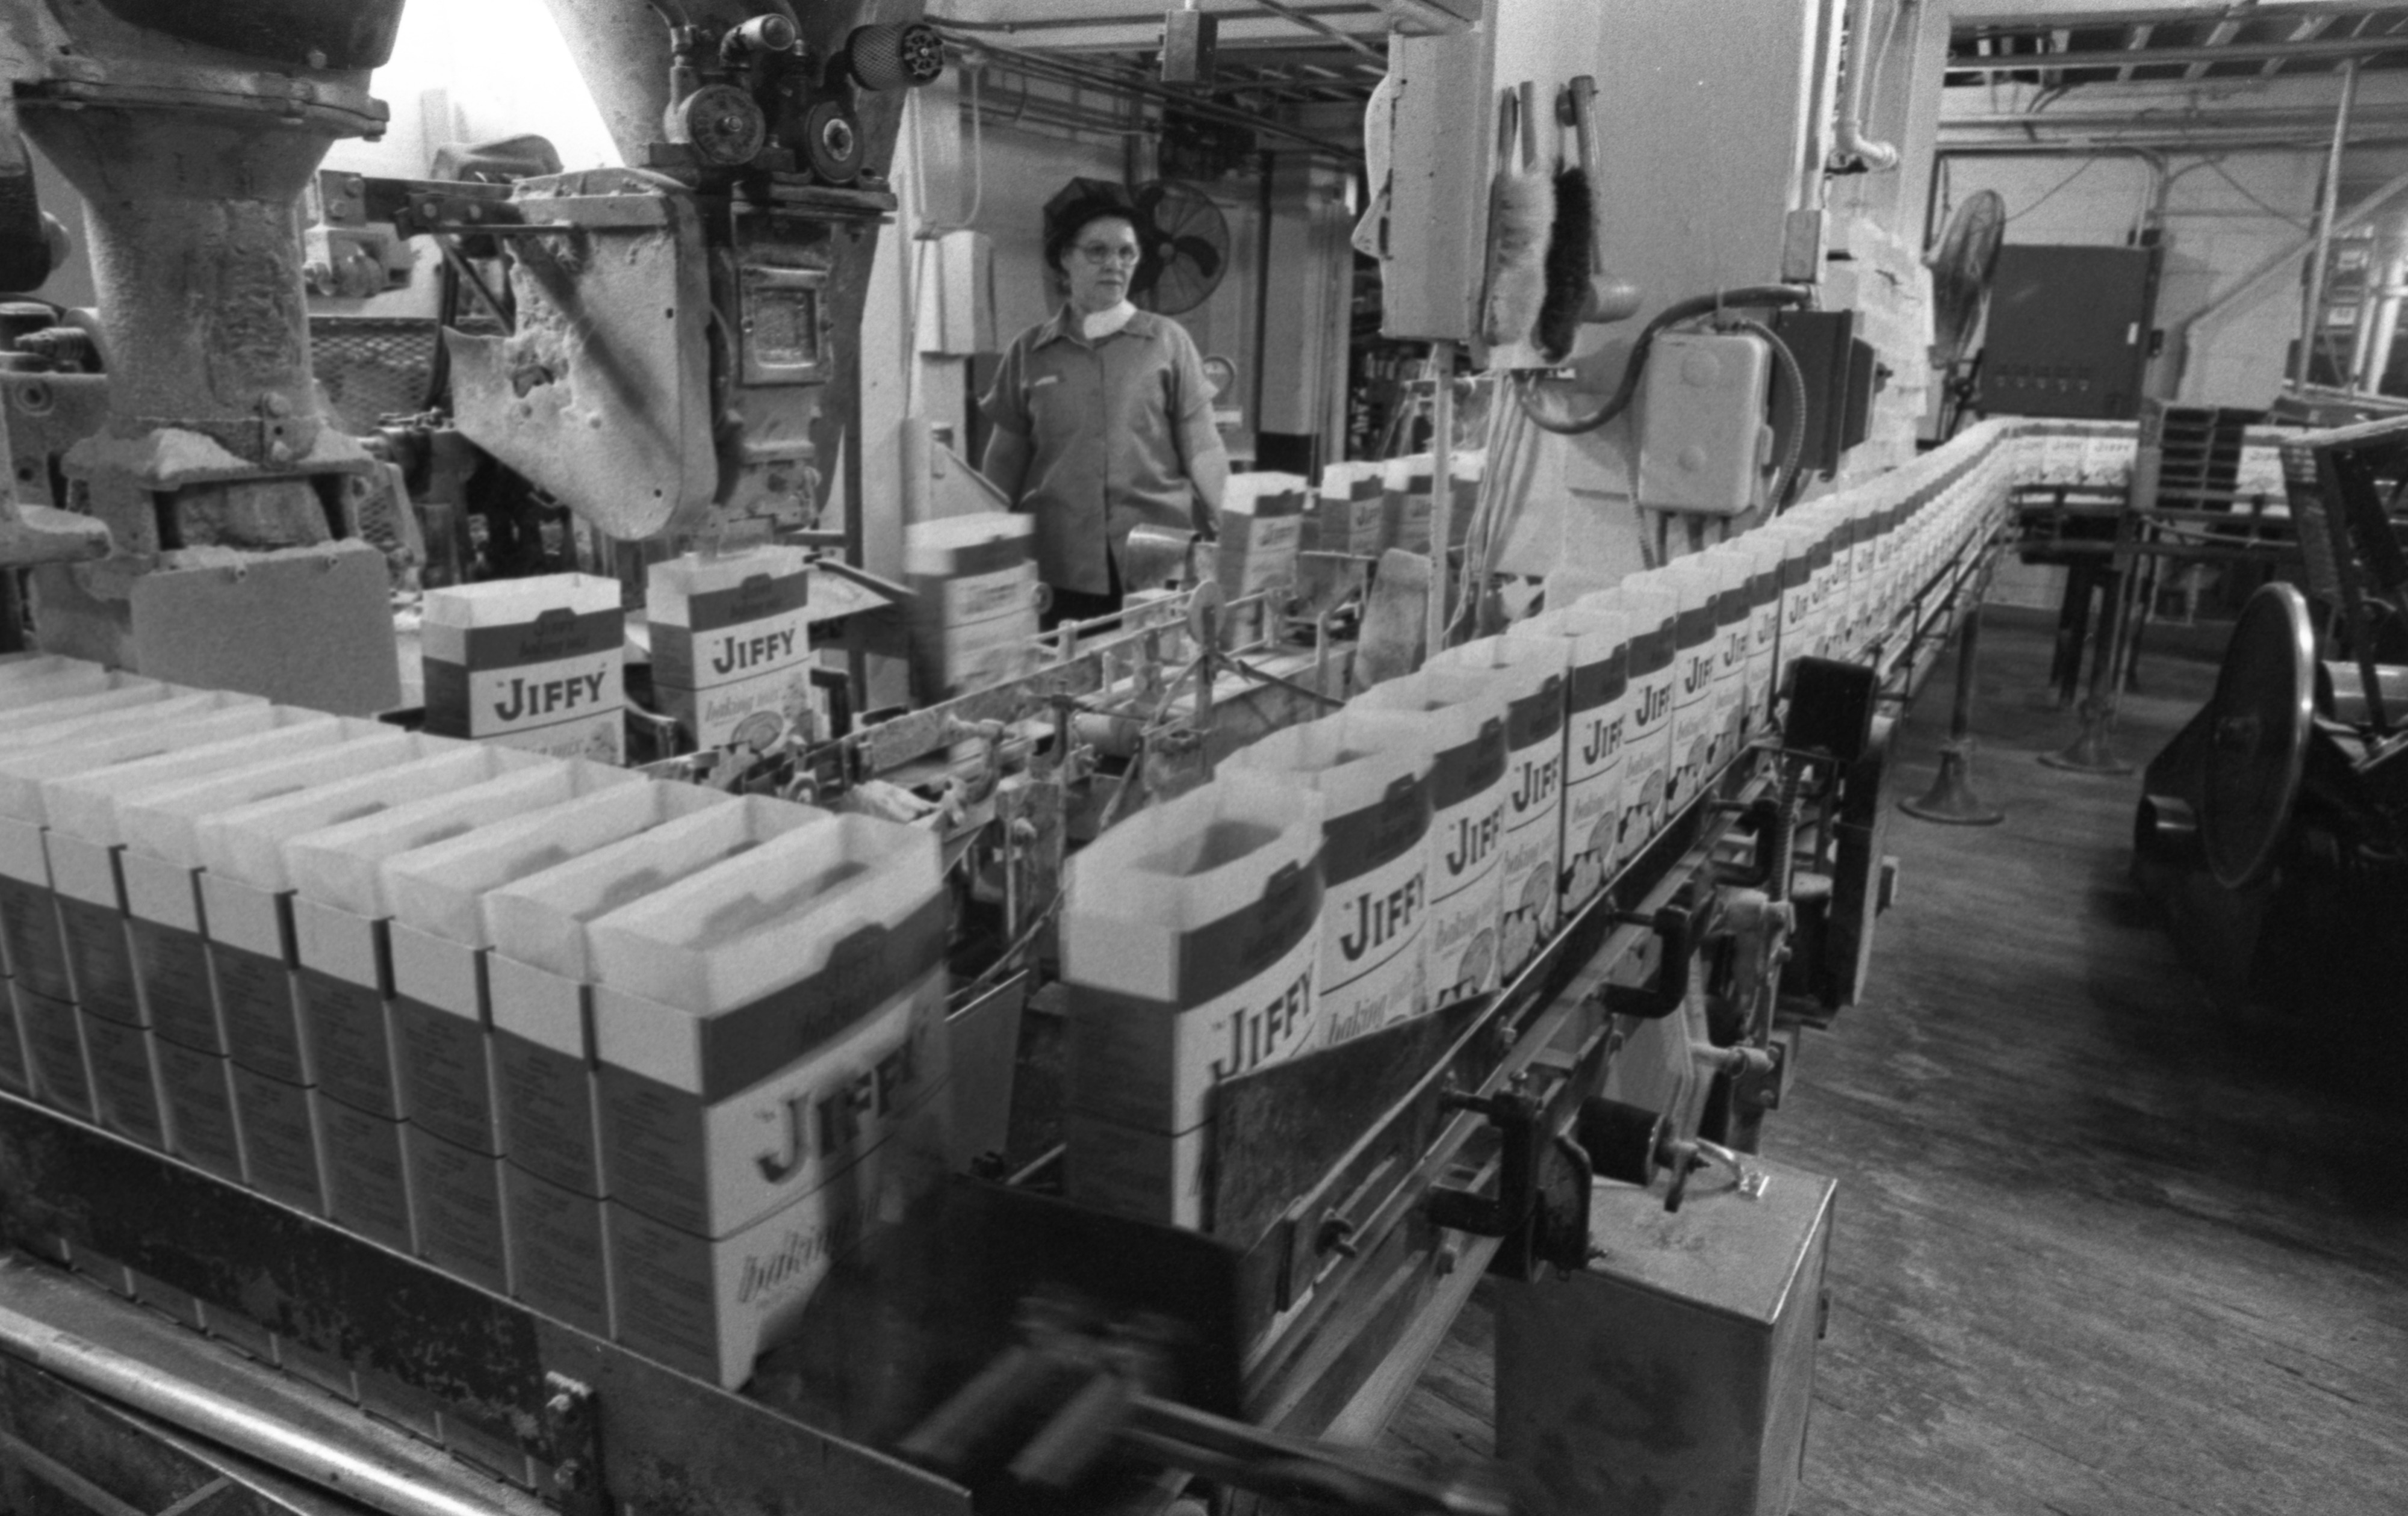 Boxes Line Up To Be Filled In The Jiffy Mix Packaging Plant, January 1989 image